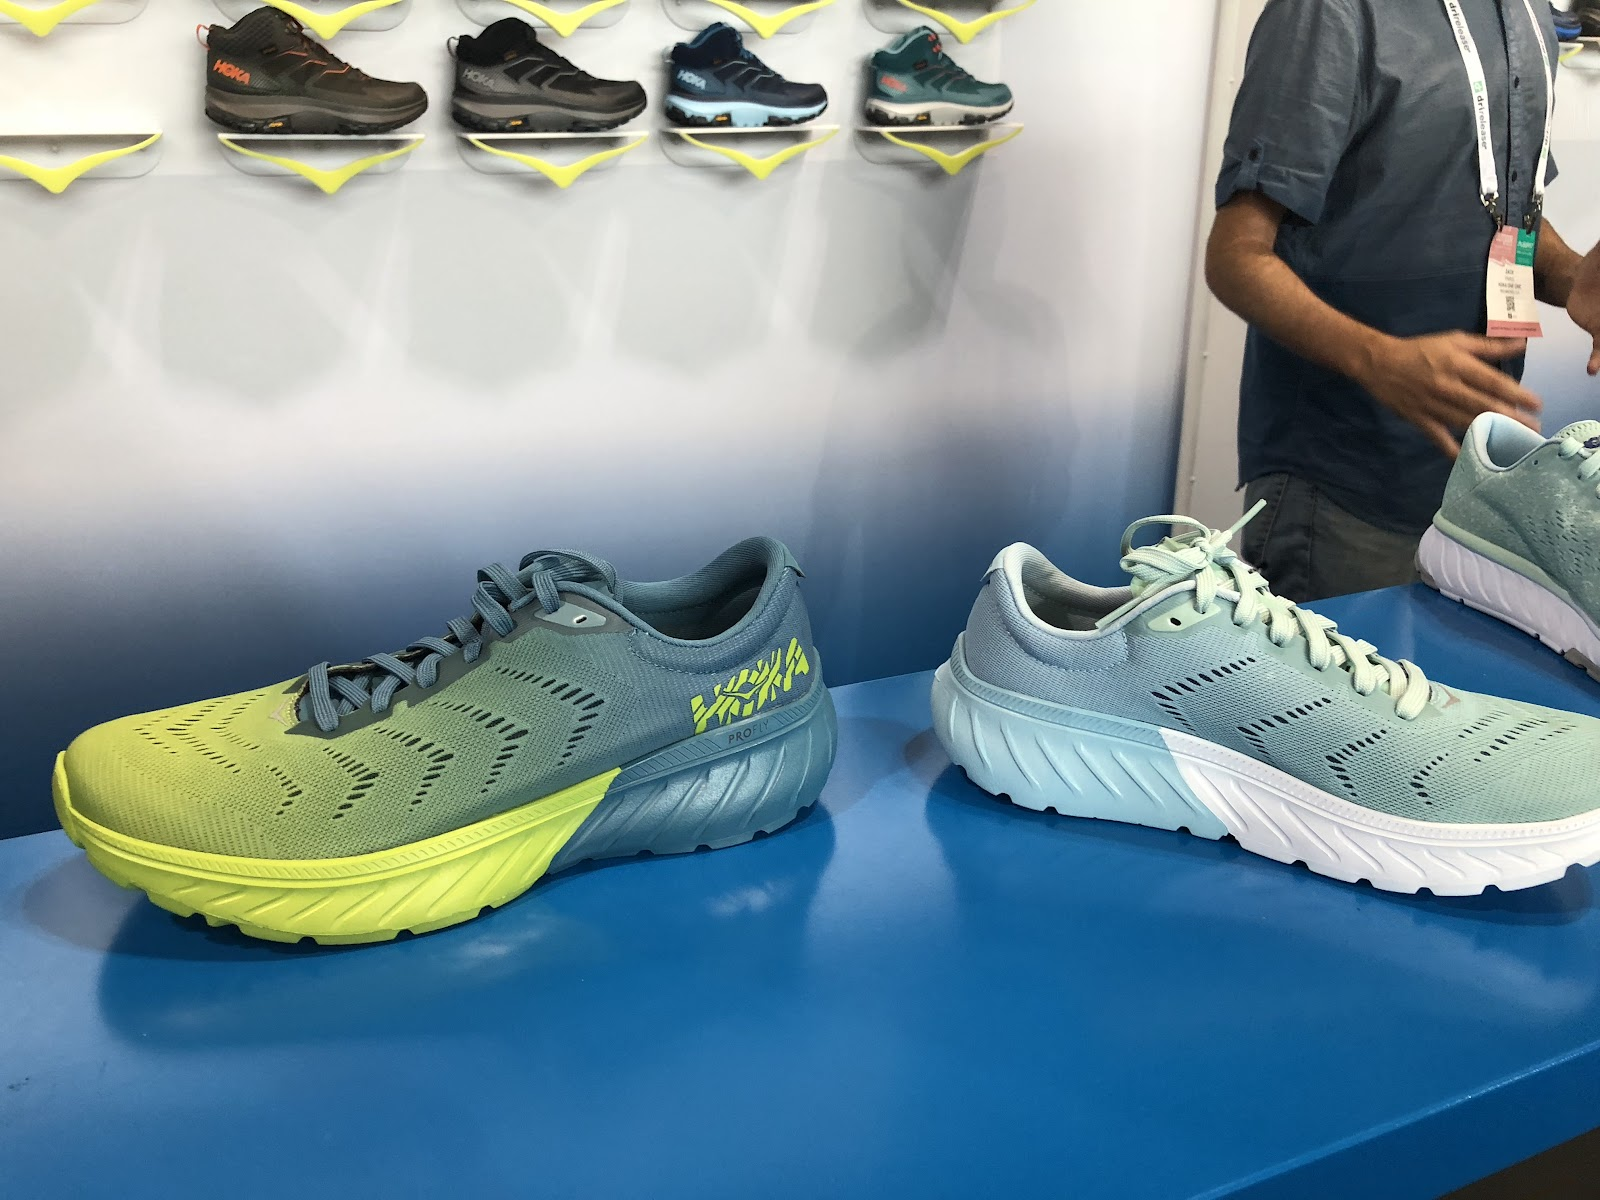 0aabb11795 Road Trail Run: Spring 2019 Hoka One One Previews: Mach 2, Cavu 2 ...